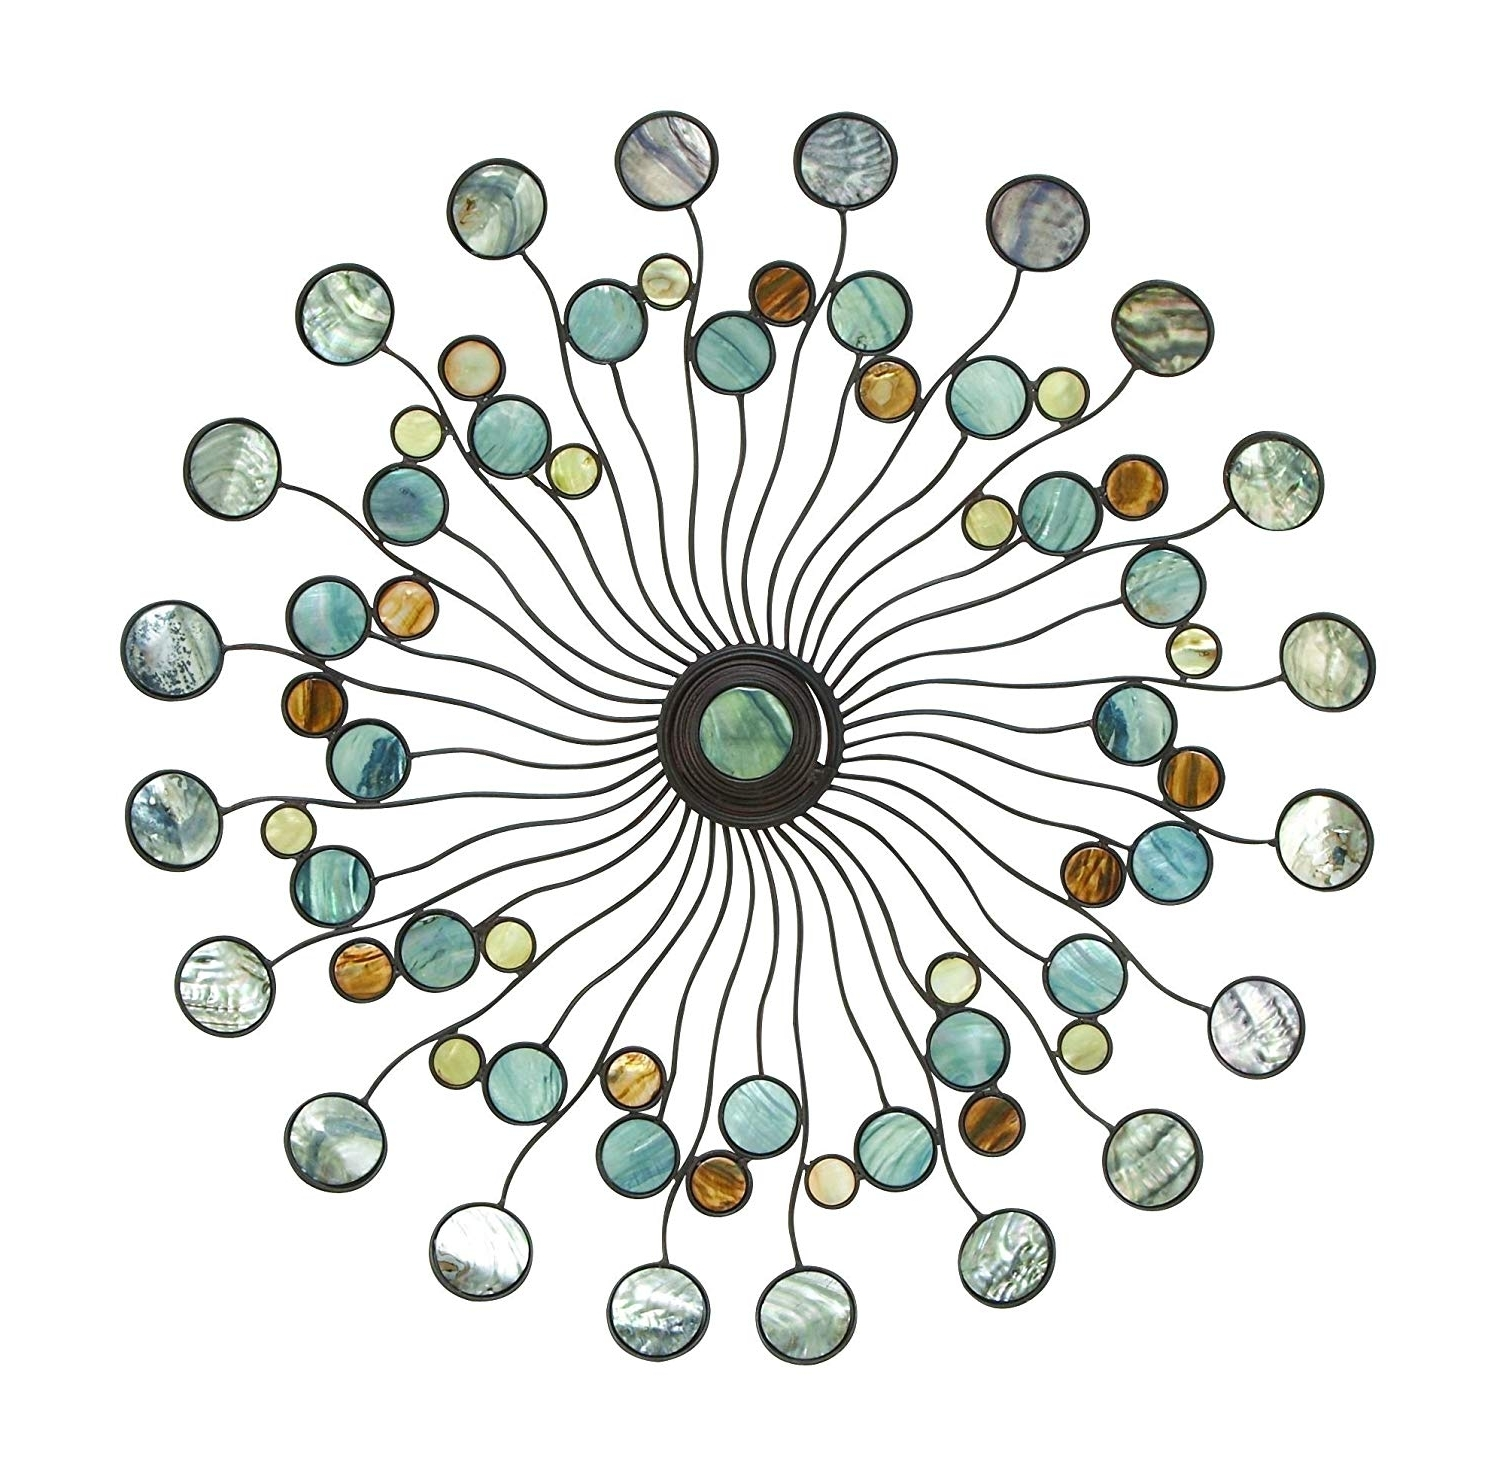 Most Recently Released Amazon: Deco 79 13533 Metal Wall Decor: Home & Kitchen Within Circle Wall Art (View 12 of 15)